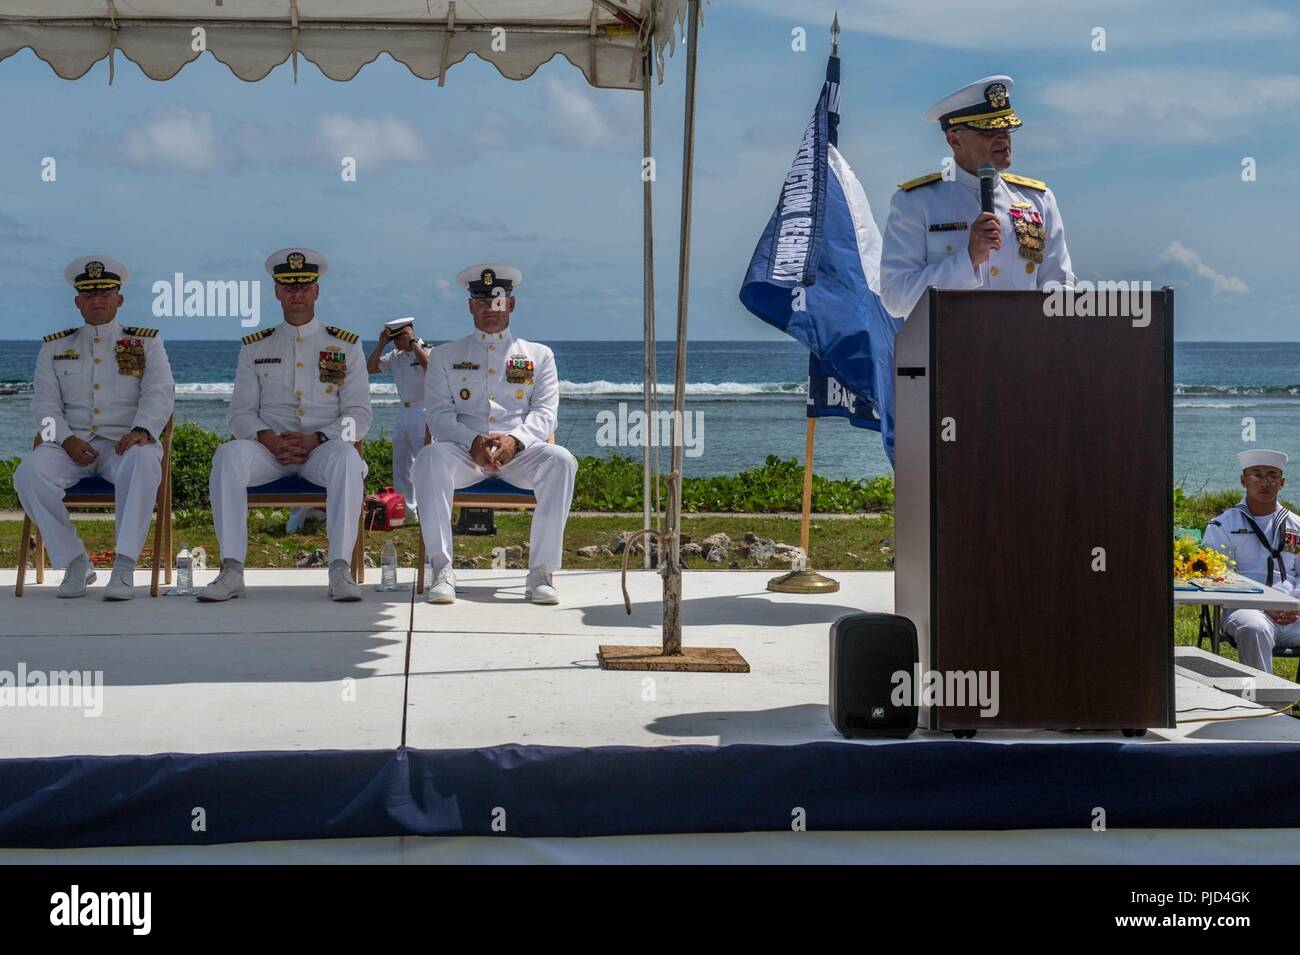 ASAN BEACH, Guam (July 19, 2018) Rear Adm. Troy McClelland, Deputy Commander for the Naval Construction Force, Navy Expeditionary Command, speaks during 30th Naval Construction Regiment's (30 NCR) change of command ceremony at the War in the Pacific National Historical Park Asan Beach Unit. During the ceremony, Capt. Steven Stasick relieved Capt. Jeffrey Kilian as commodore of 30 NCR. Stock Photo